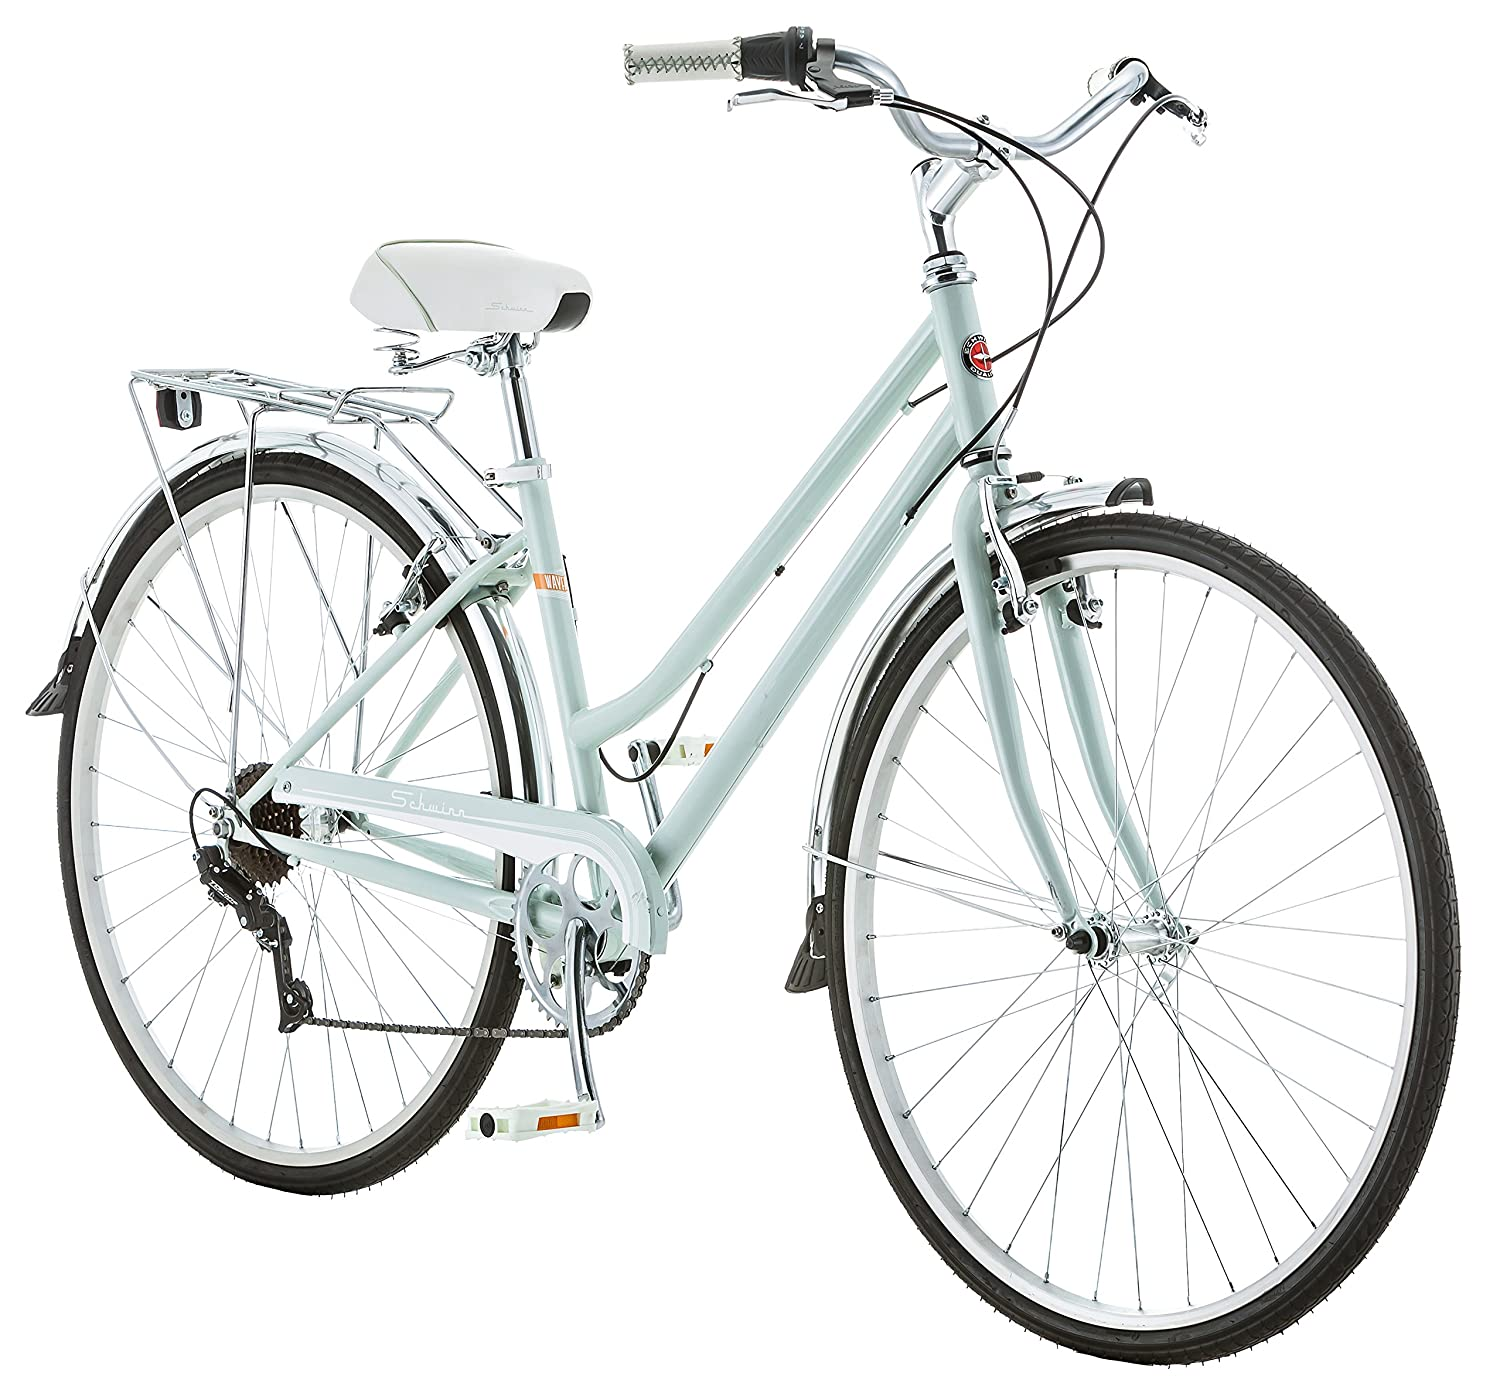 Best Hybrid Bike for Women 2